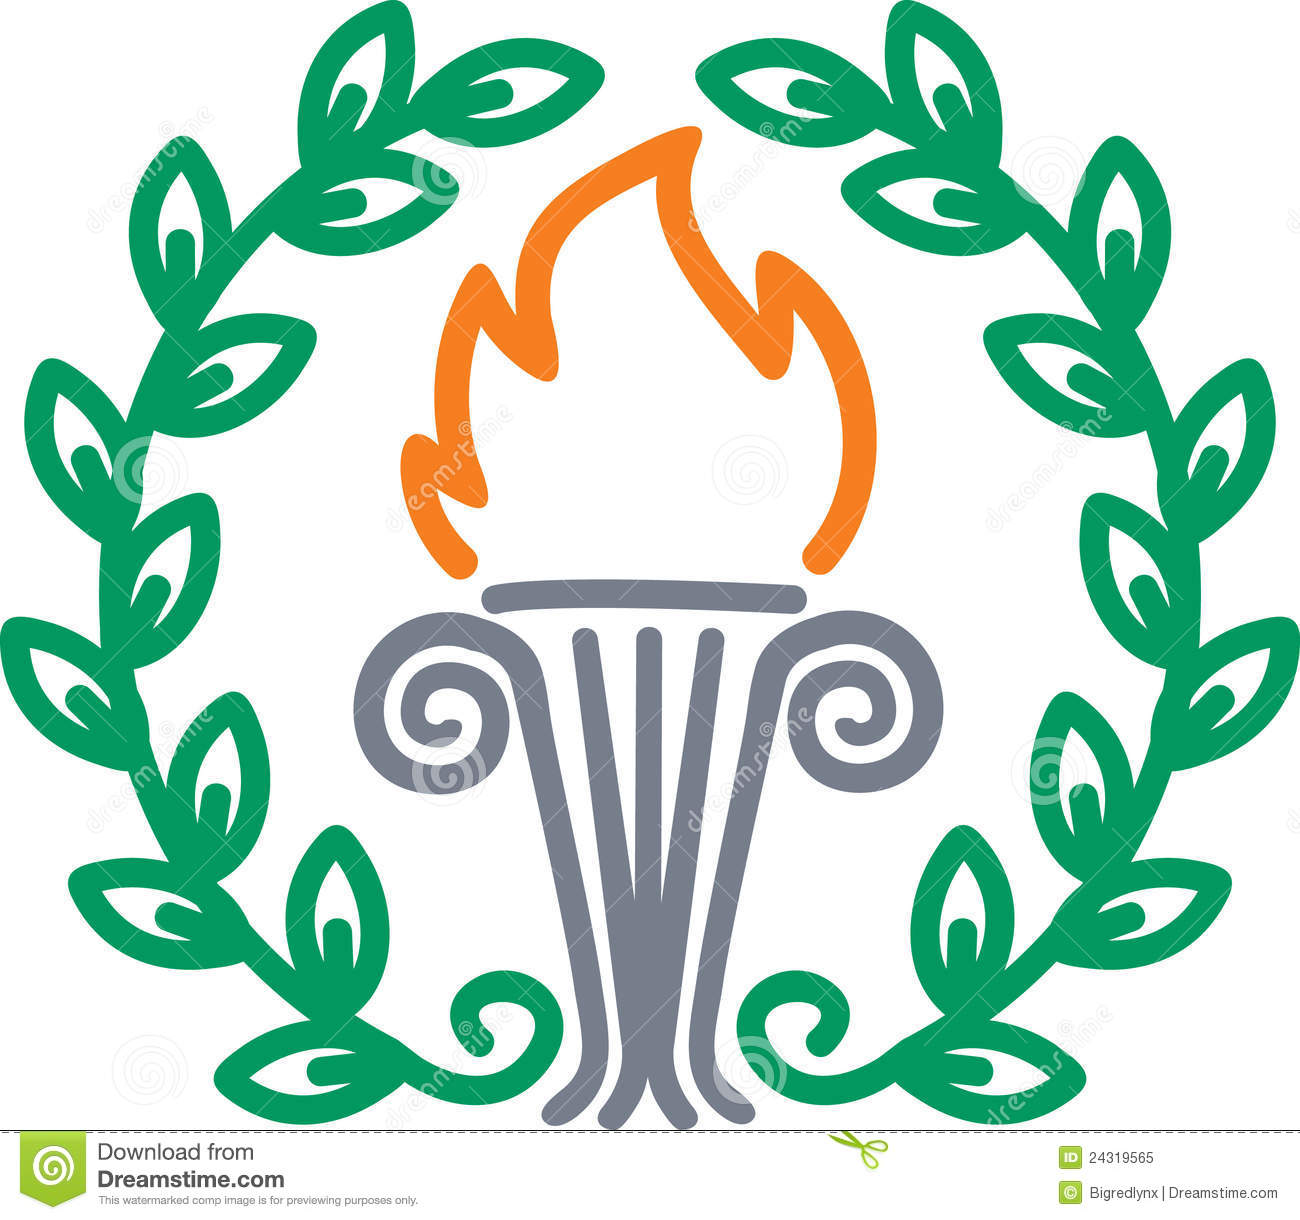 Demeter greek symbol choice image symbols and meanings demeter symbol torch abstract greek torch stock vector image of leaves icon biocorpaavc buycottarizona Image collections